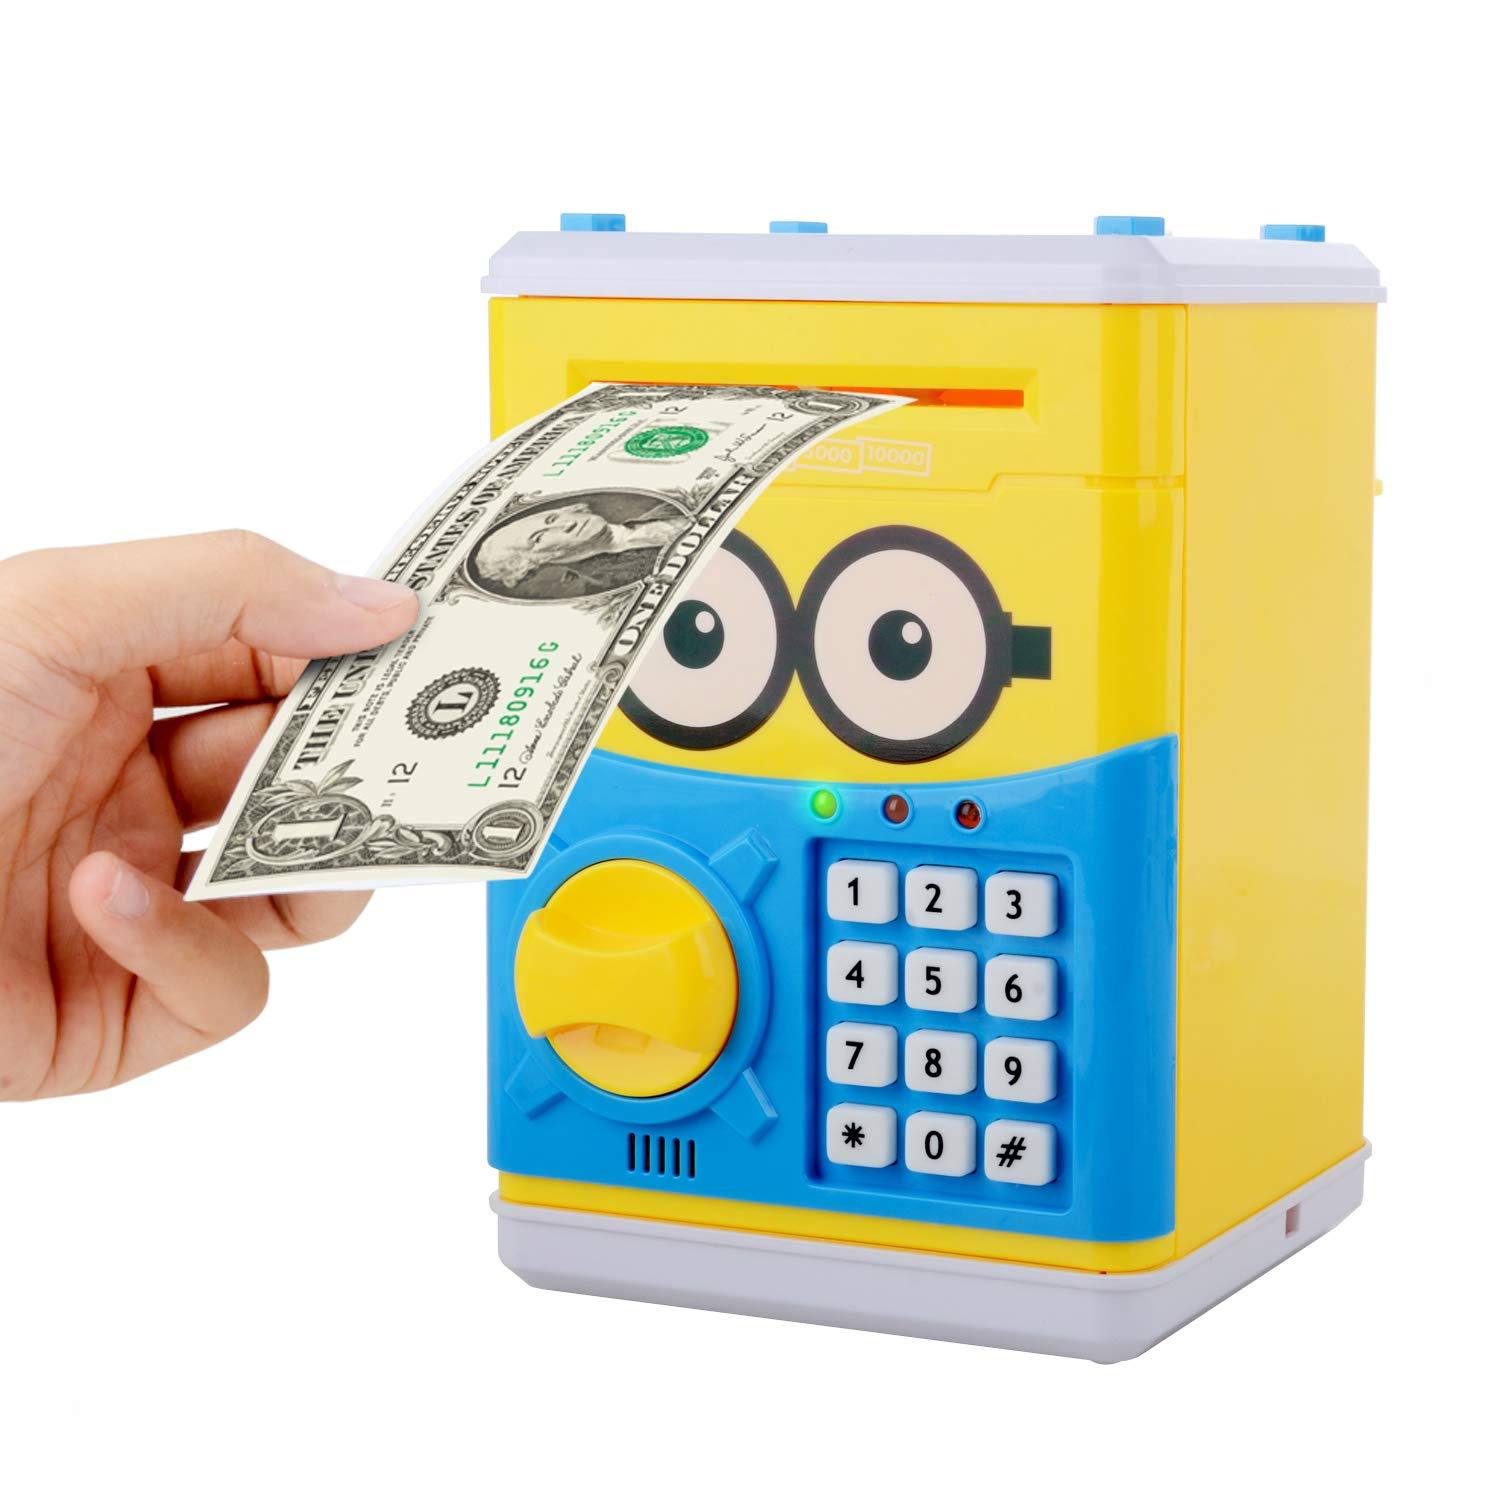 Cartoon Piggy Bank for Children Kids Password Electronic Money Bank, Mini ATM Electronic Coin Bank Coin Box, Great Christmas Gift for Children by CreaTion (Image #1)